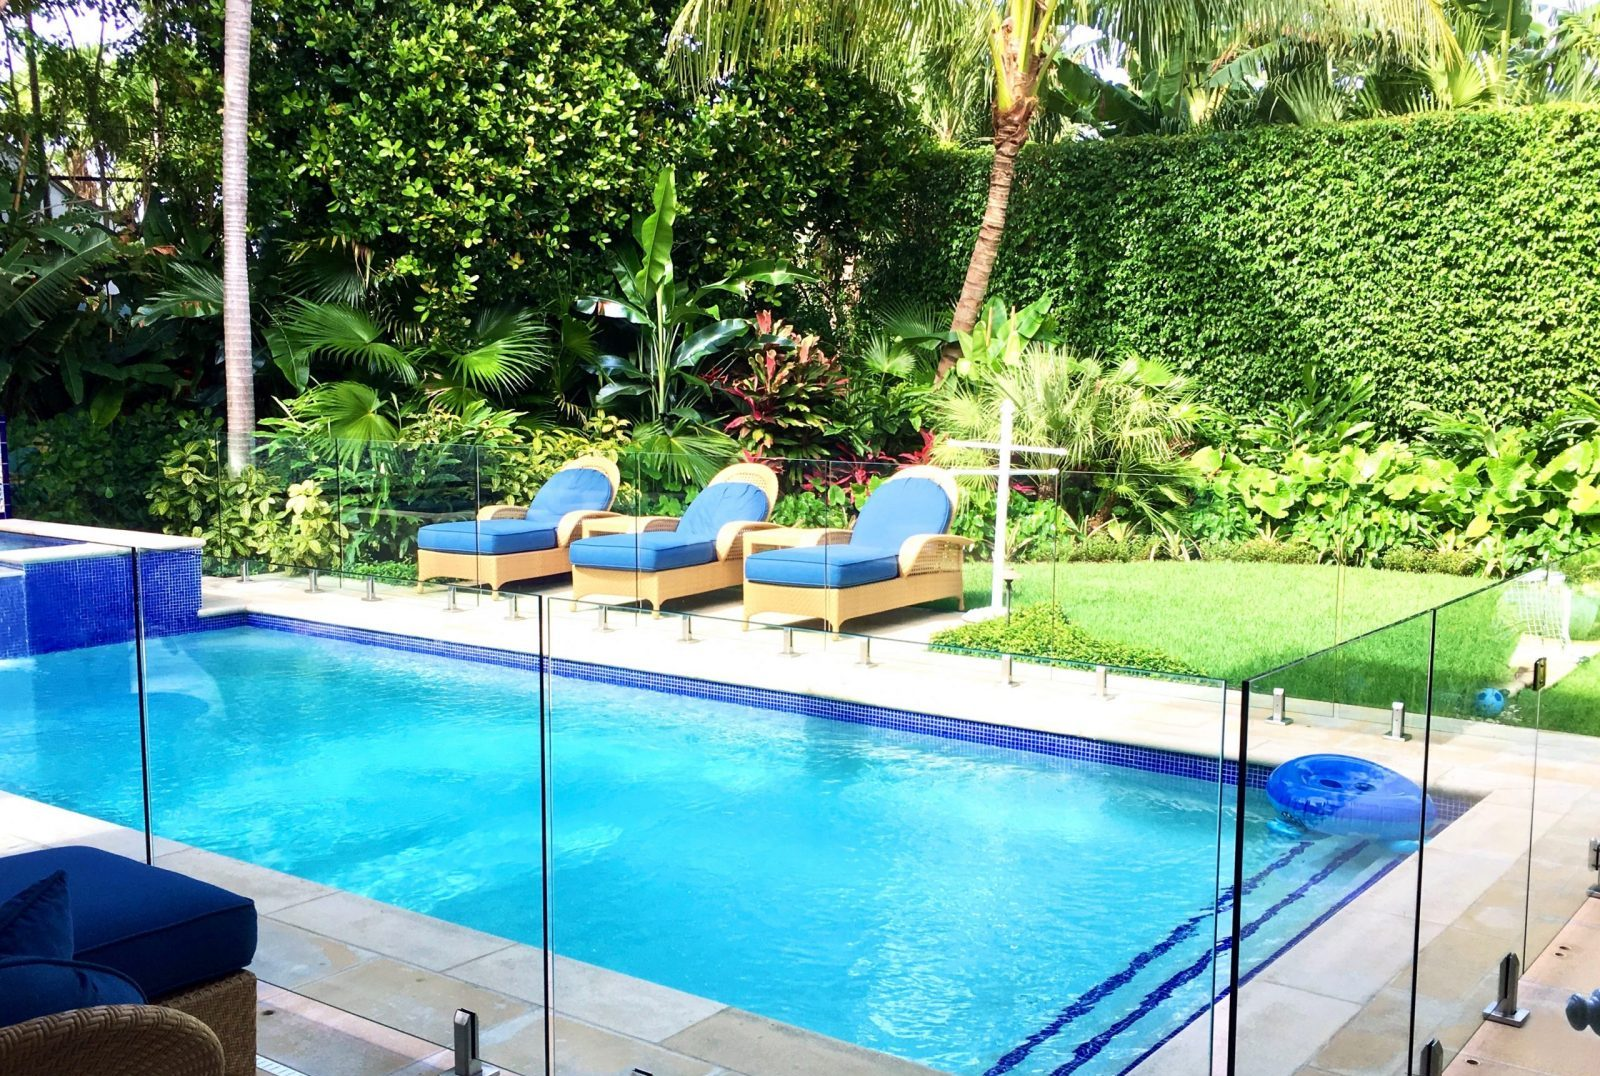 Does Florida require a fence around a pool?